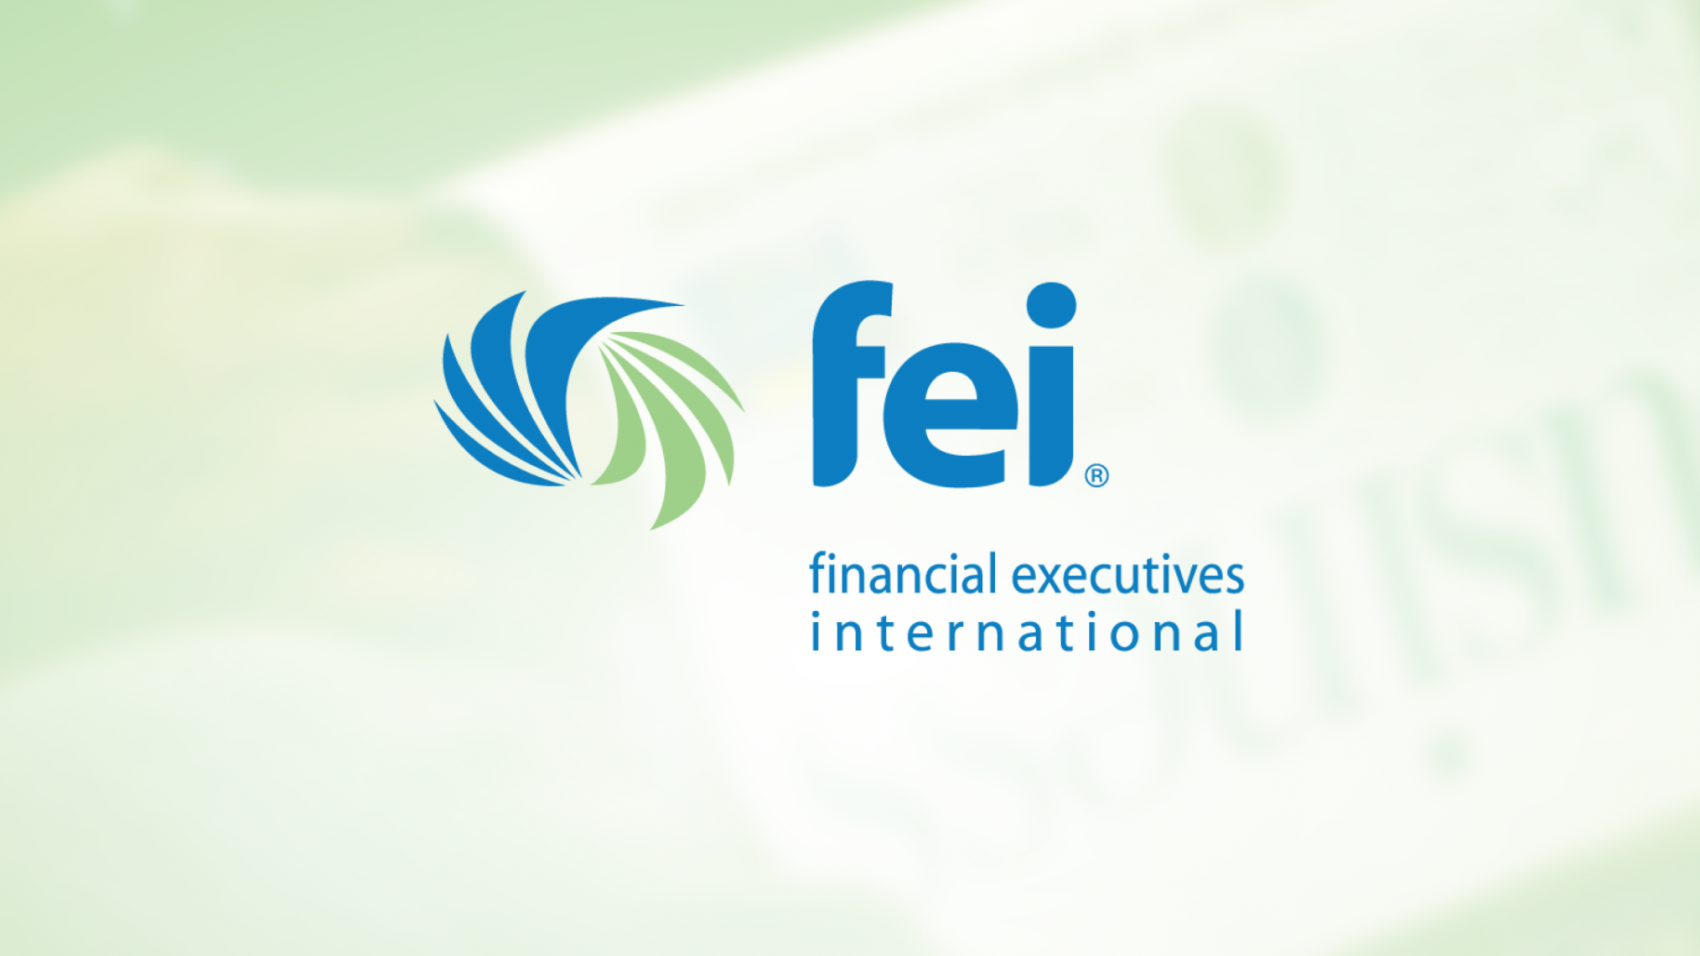 fei-daily-partners-with-workiva